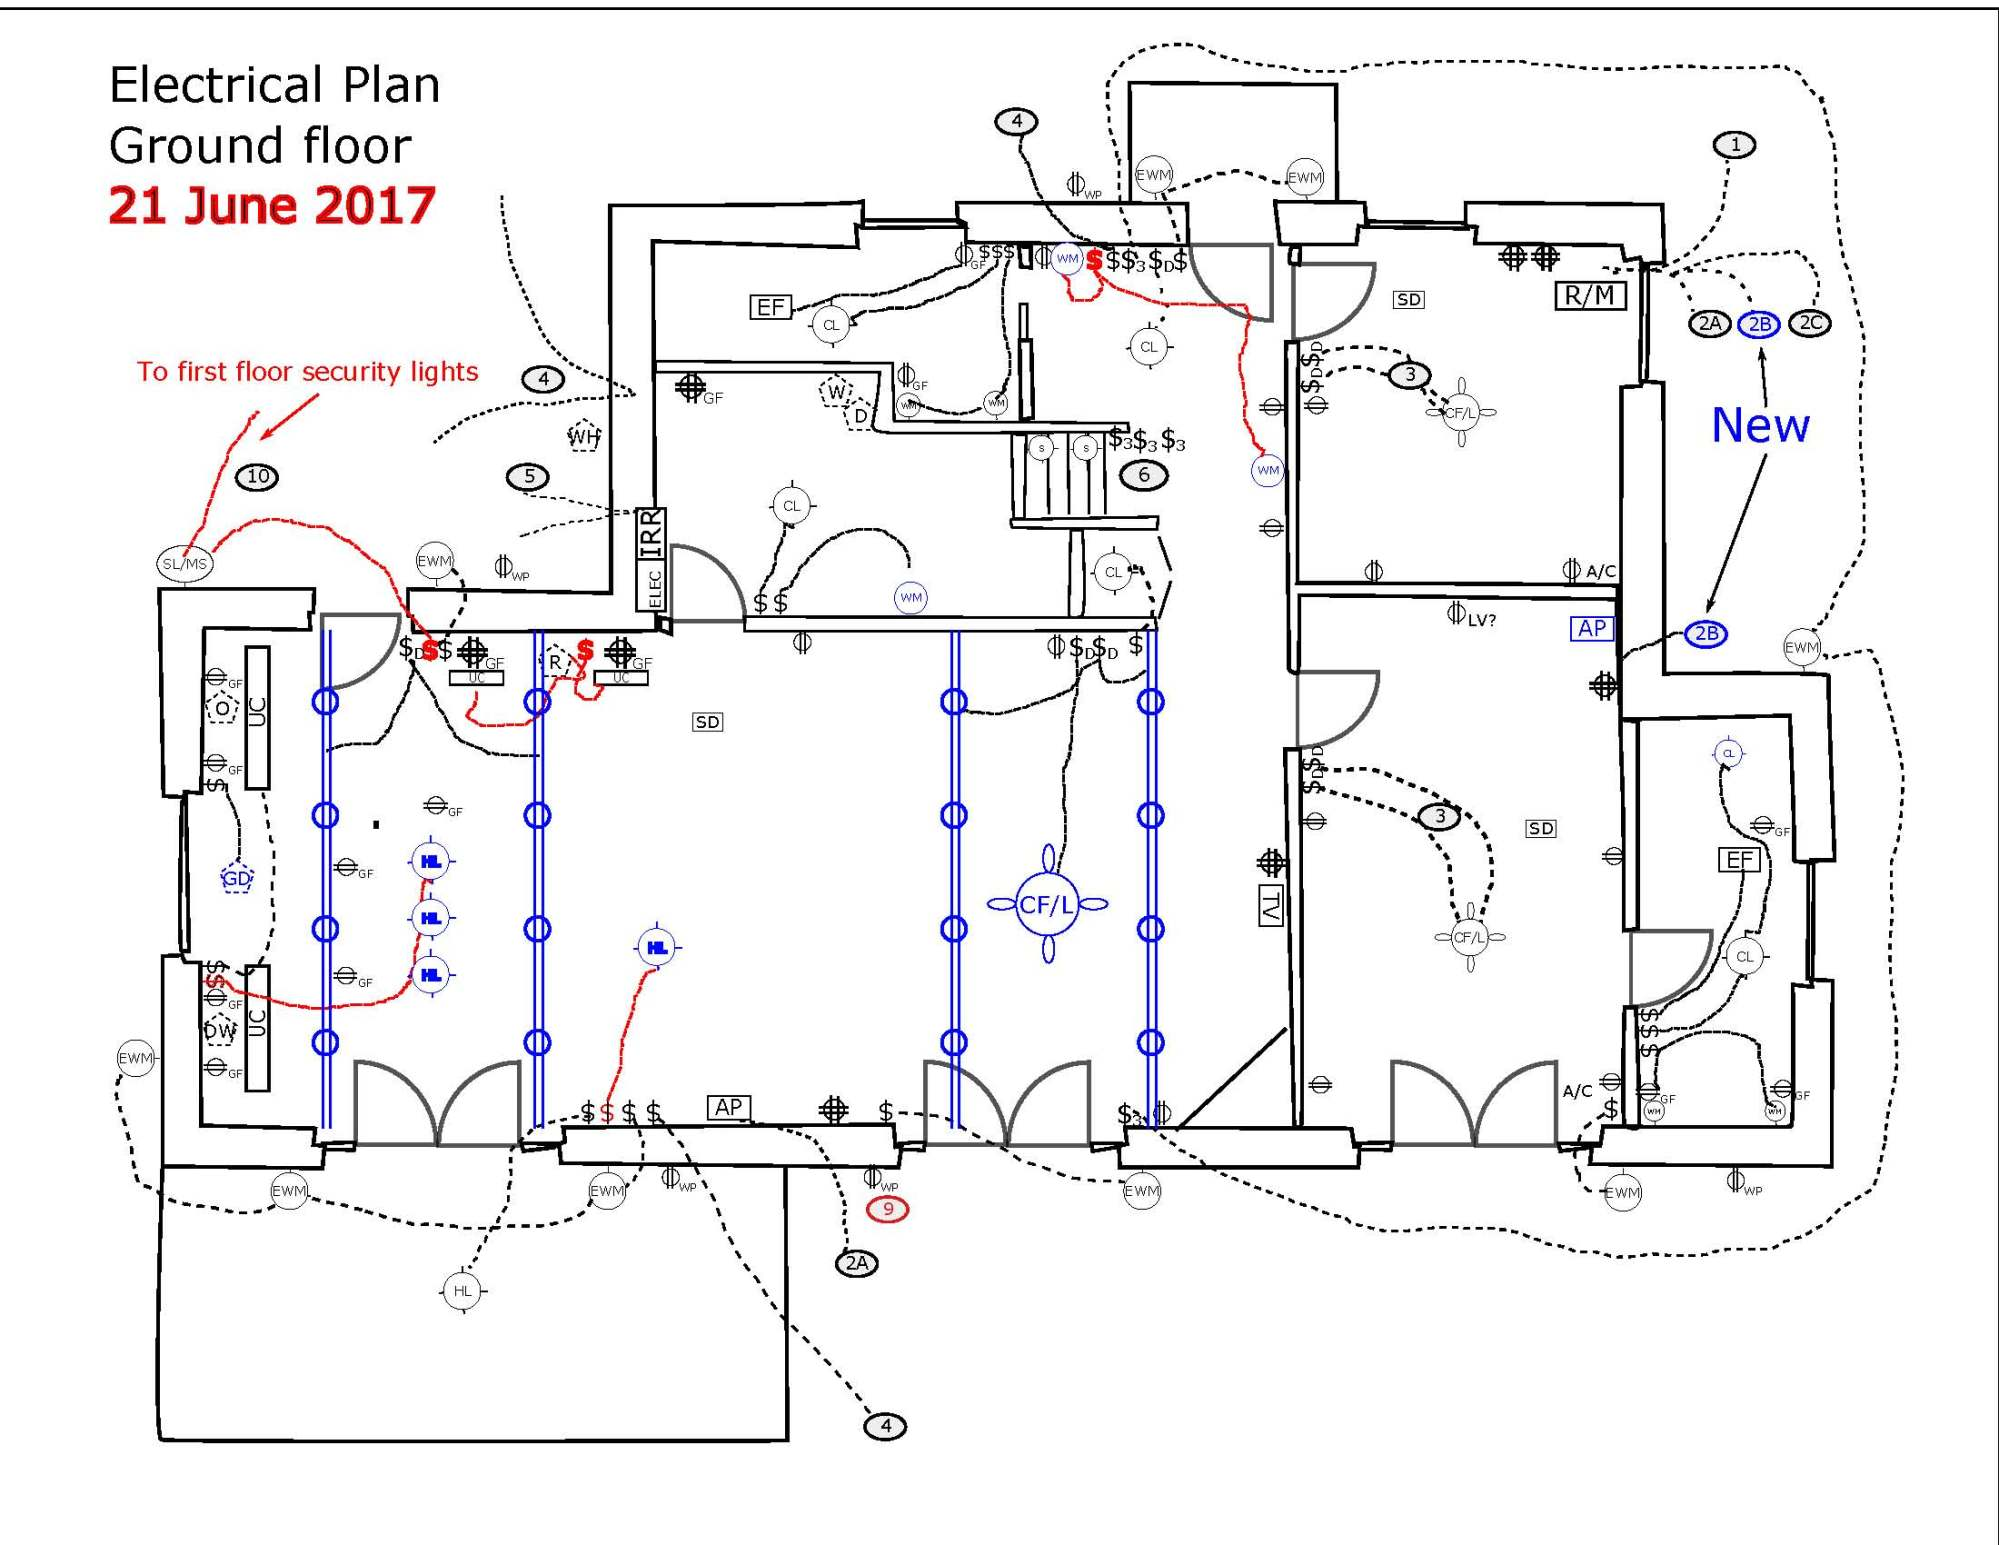 hight resolution of electrical plan drawing image